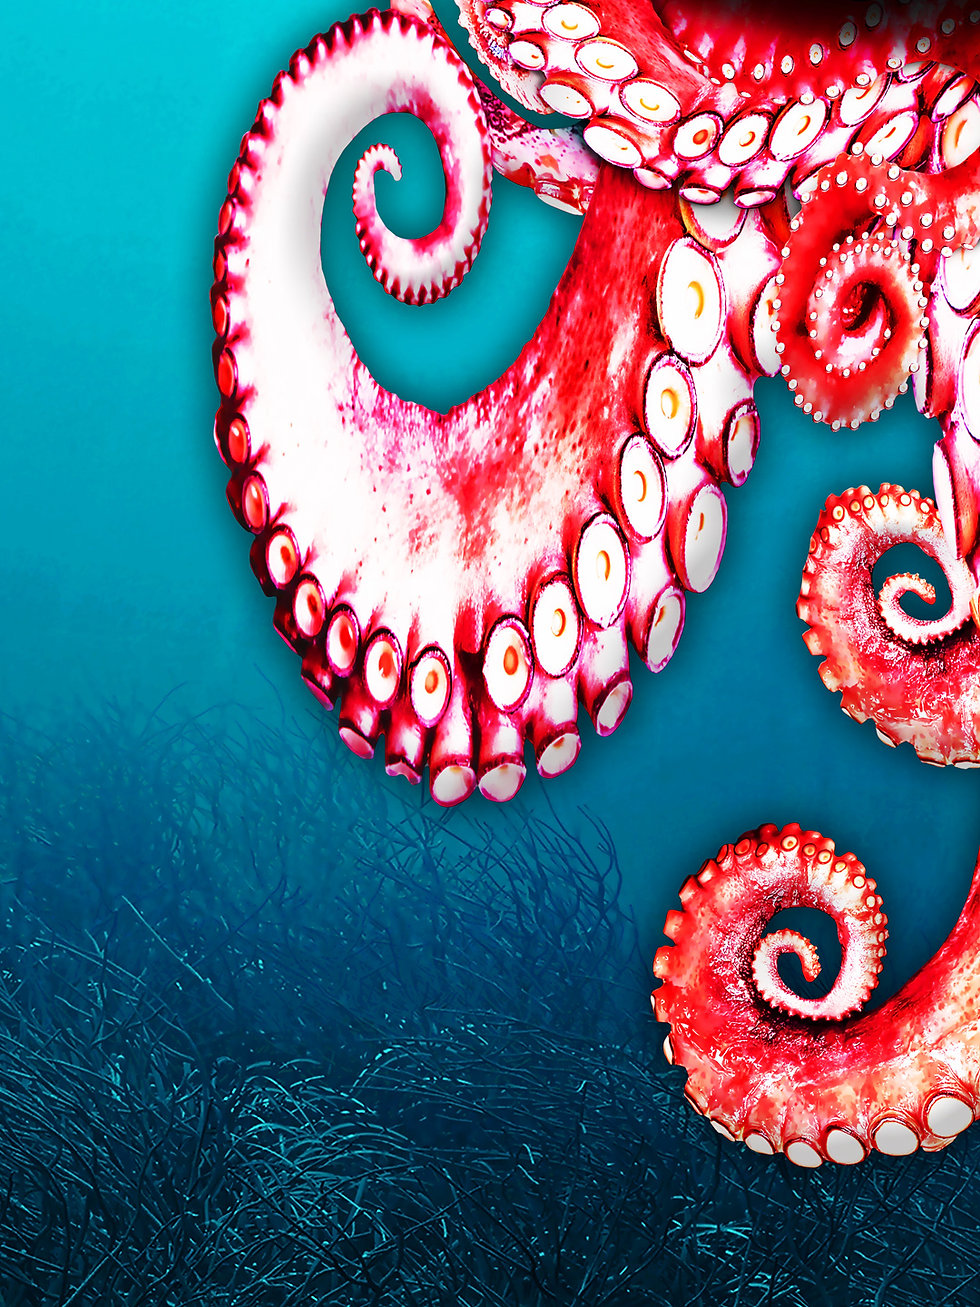 Octopus_artwork_6.jpg